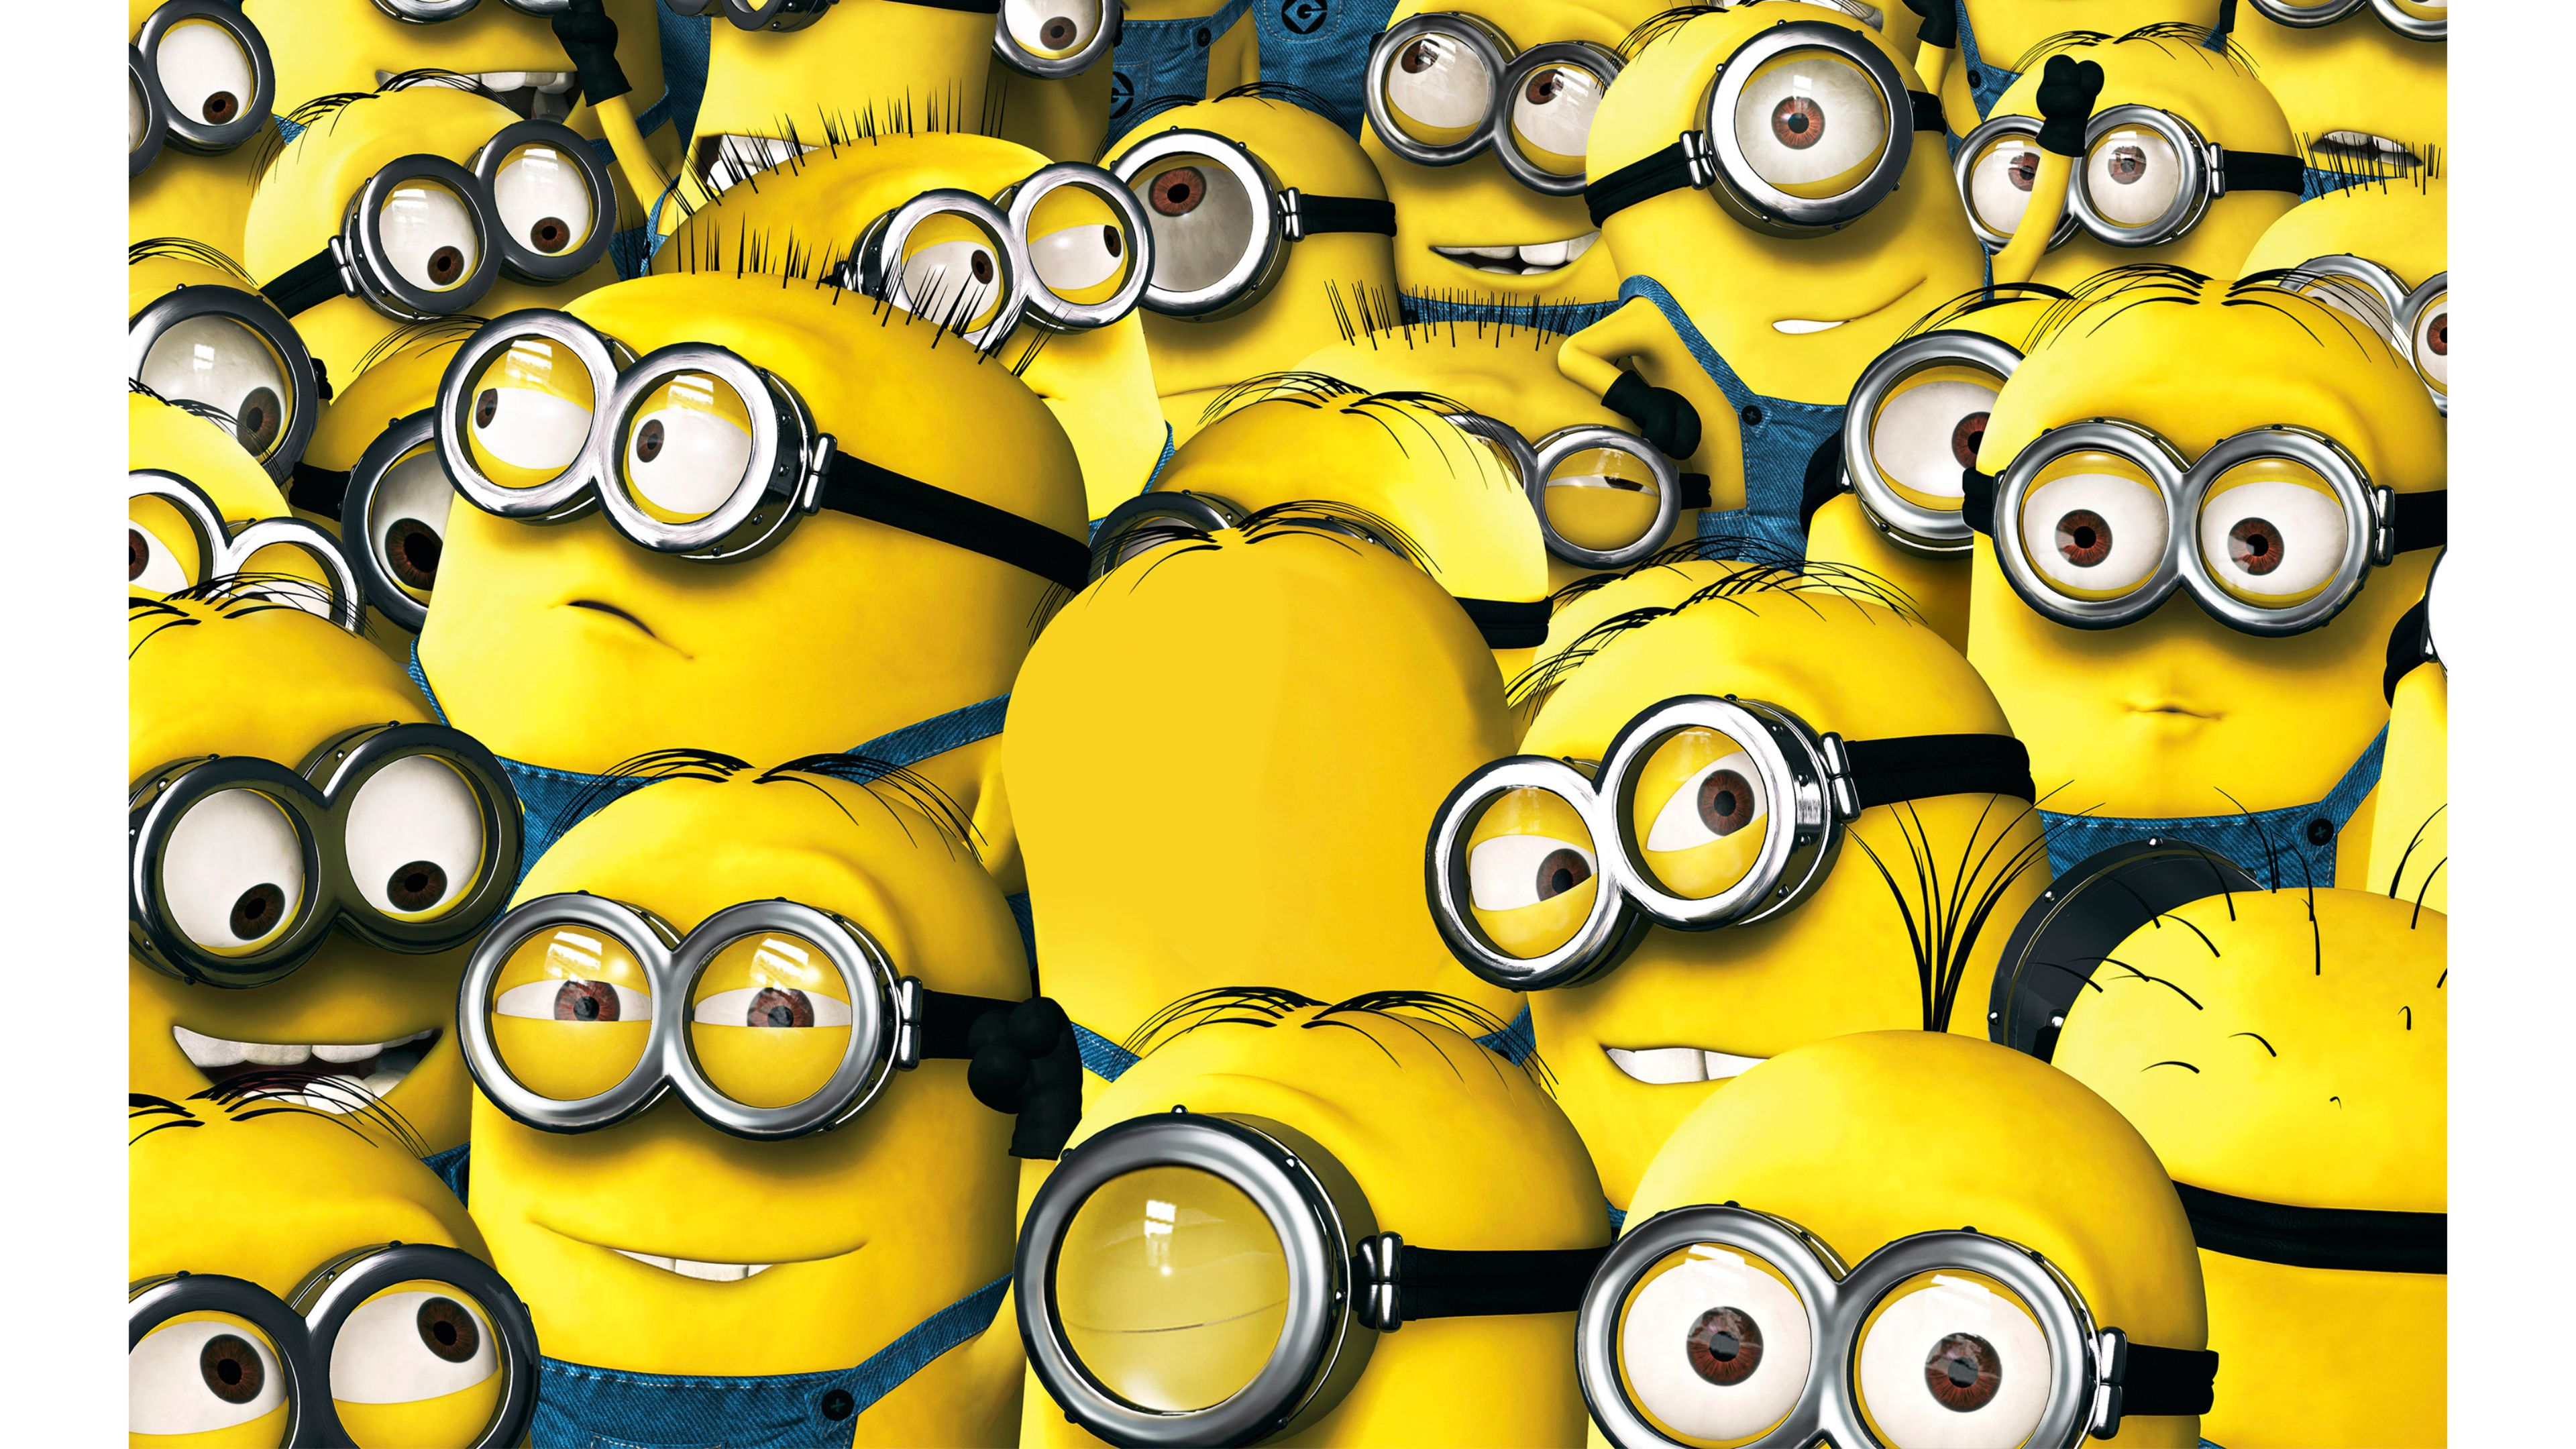 Minions 4k Wallpapers For Your Desktop Or Mobile Screen Free And